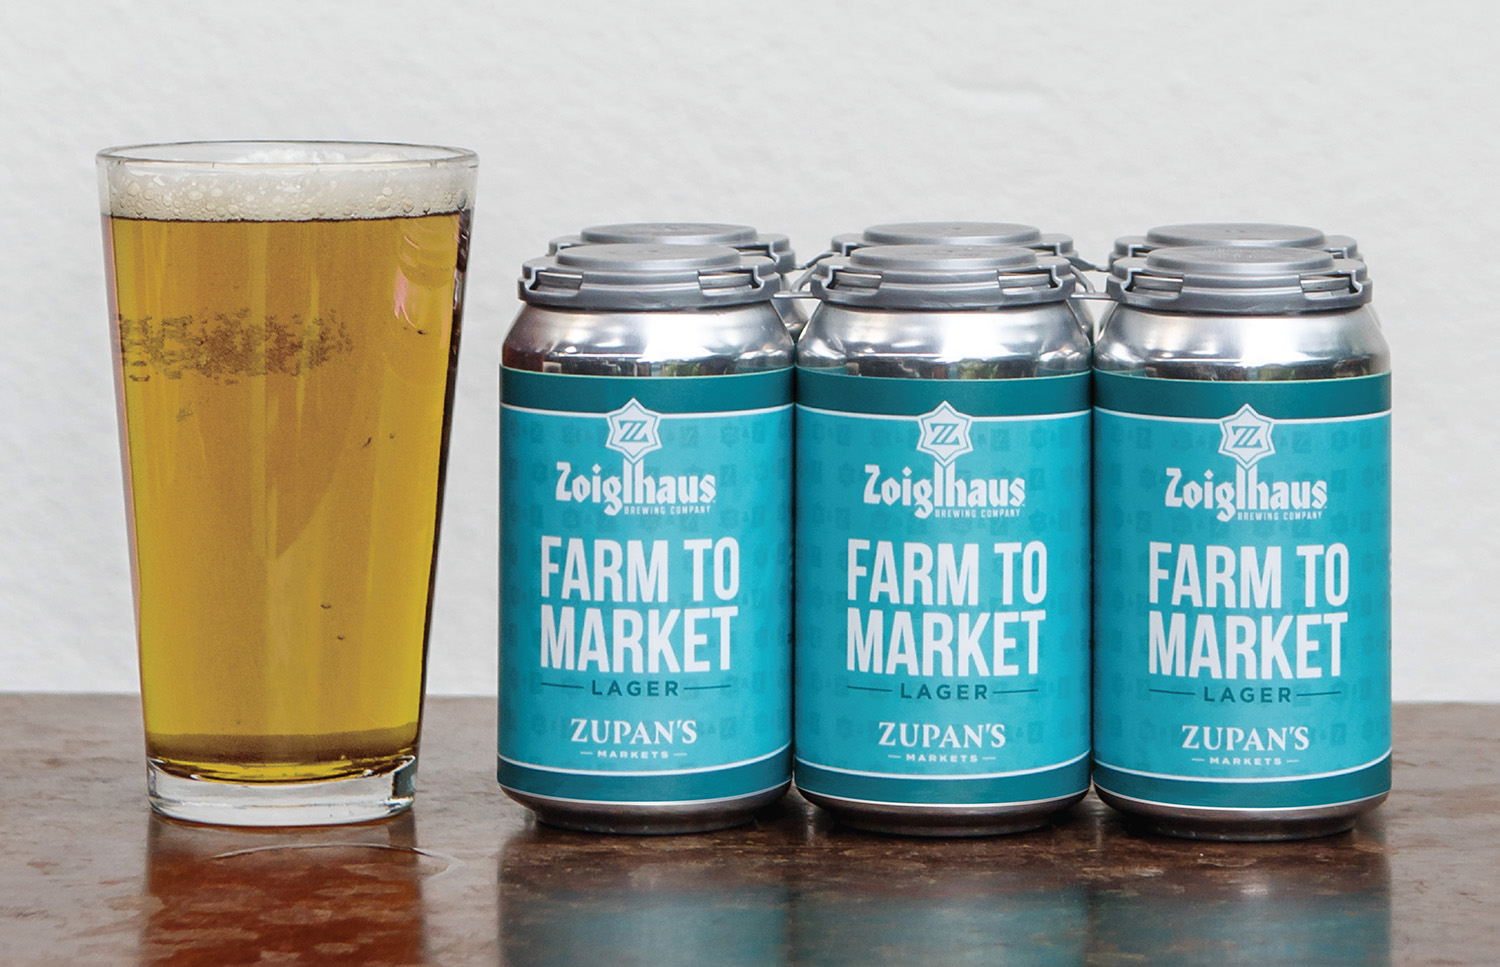 image of Zoiglhaus Farm to Market Lager courtesy of Zupan's Market